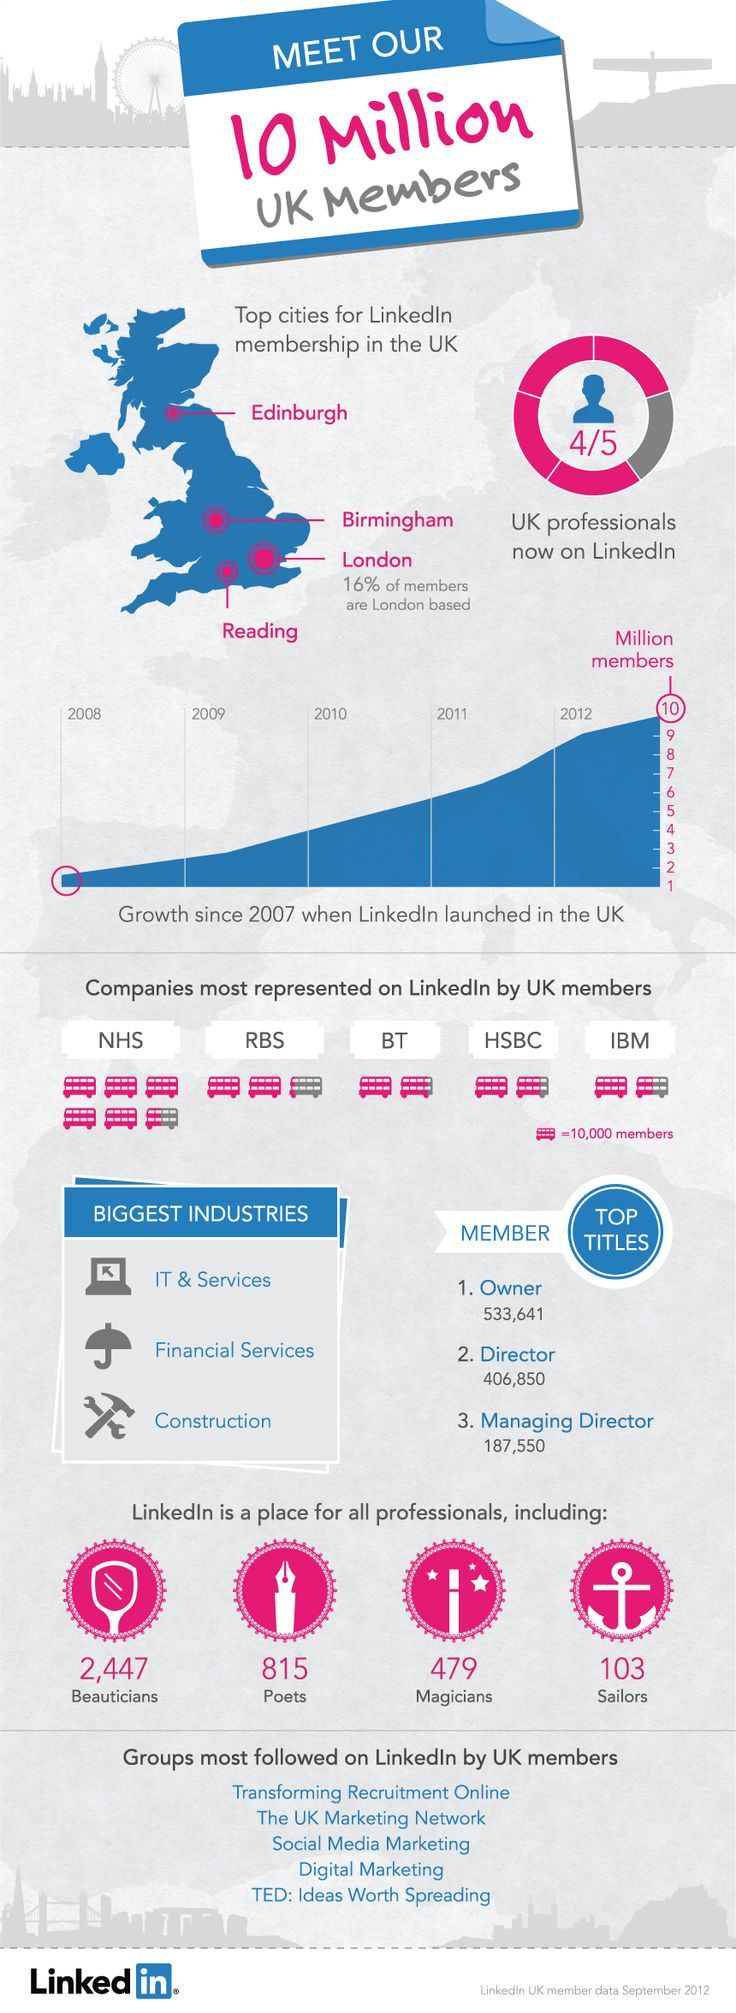 LinkedIn hits 10million users in UKLinkedin Hit, Internet Marketing, Infographic Socialmedia, Linkedin Reach, Social Media, Uk Members, Reach 10, Socialmedia Infographic, Linkedin Infographic